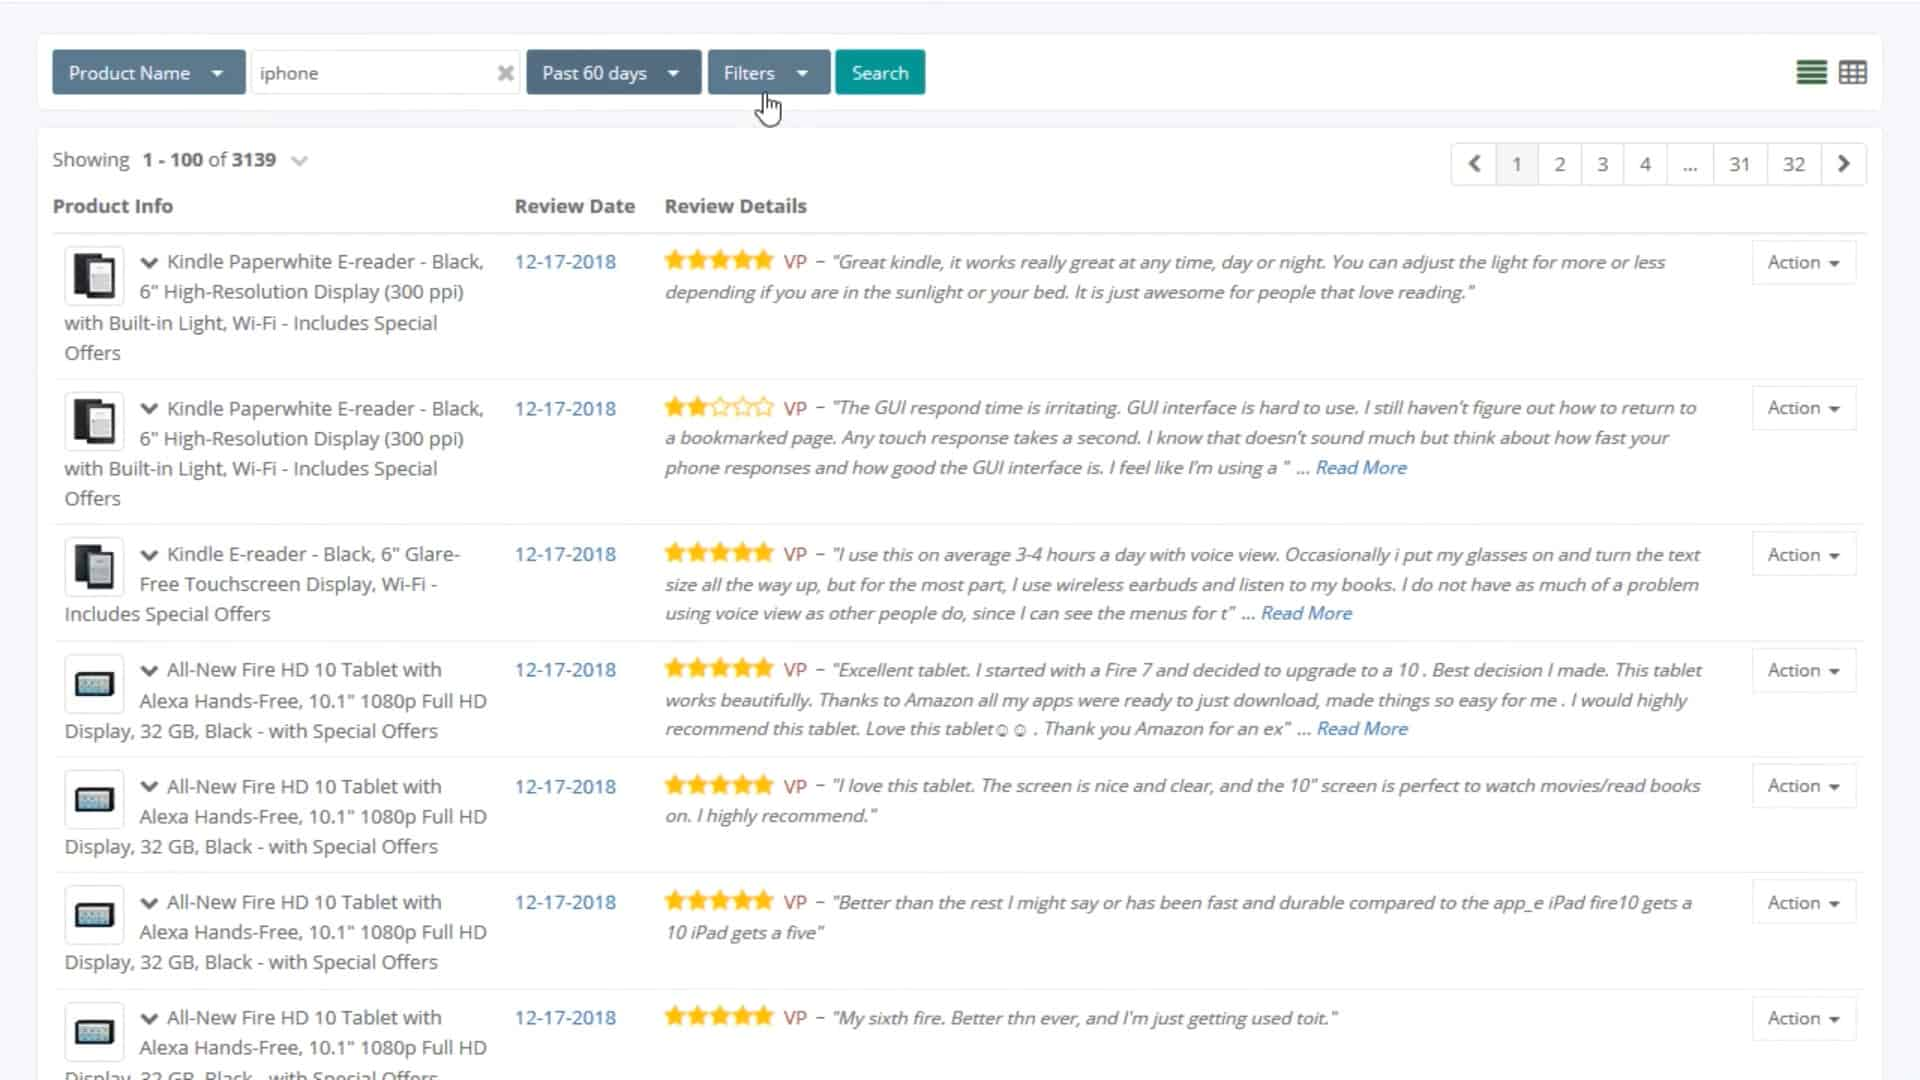 FeedbackWhiz Product Reviews Tools